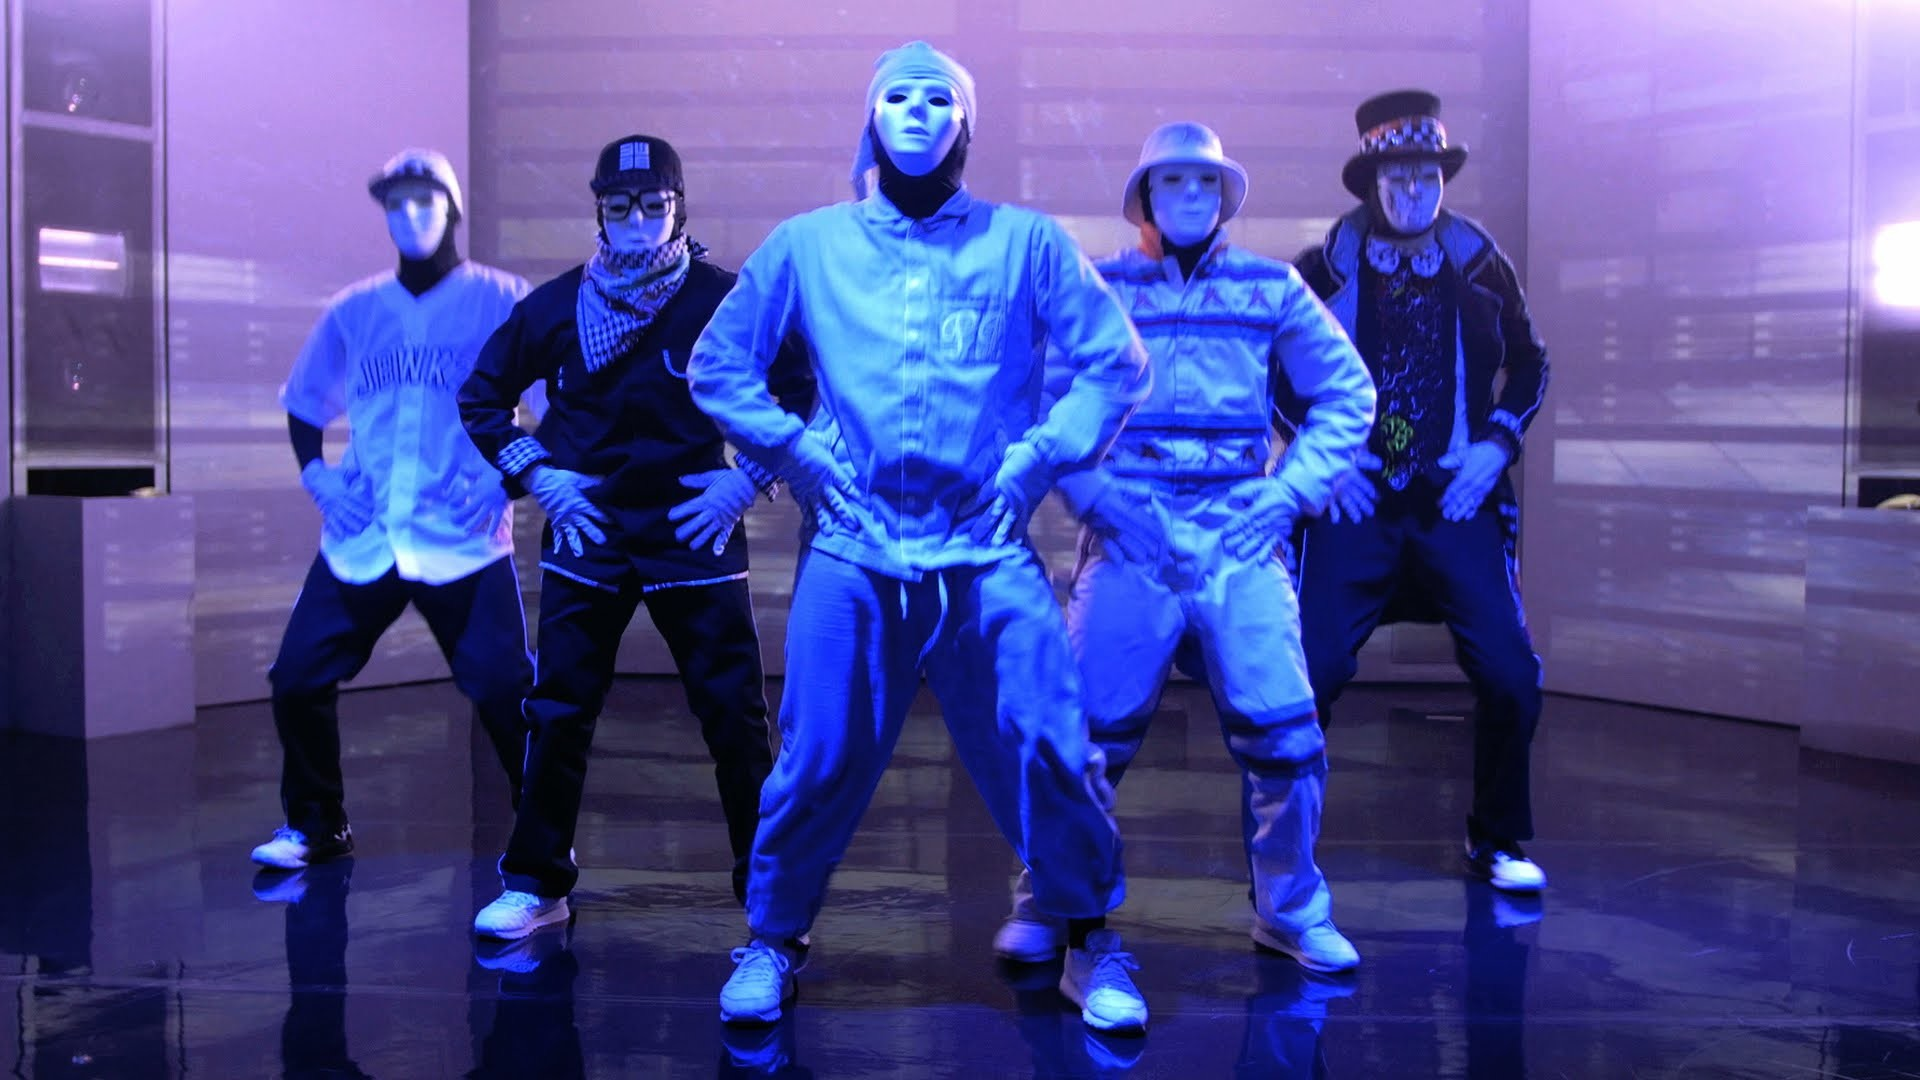 Jabbawockeez Wallpapers 3d Jabbawockeez Wallpaper 2018 58 Images